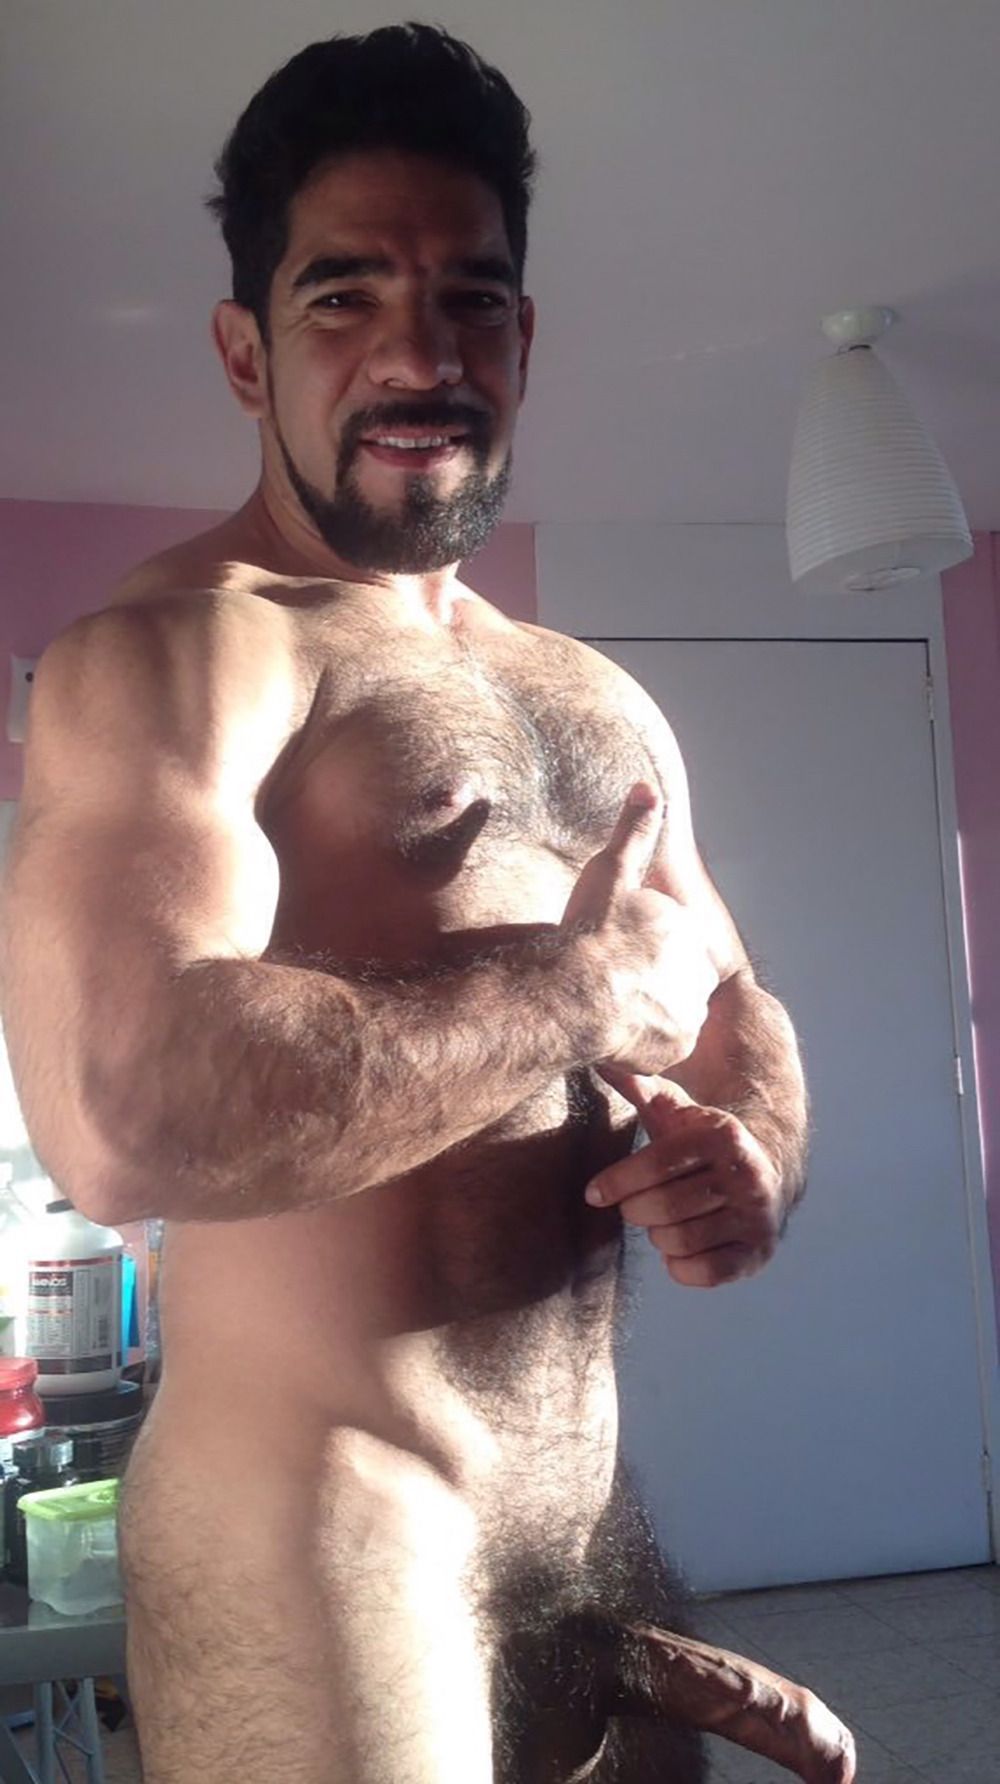 Hairy Men Hairy Pinterest Hairy Men Daddy Bear And Hairy Chest